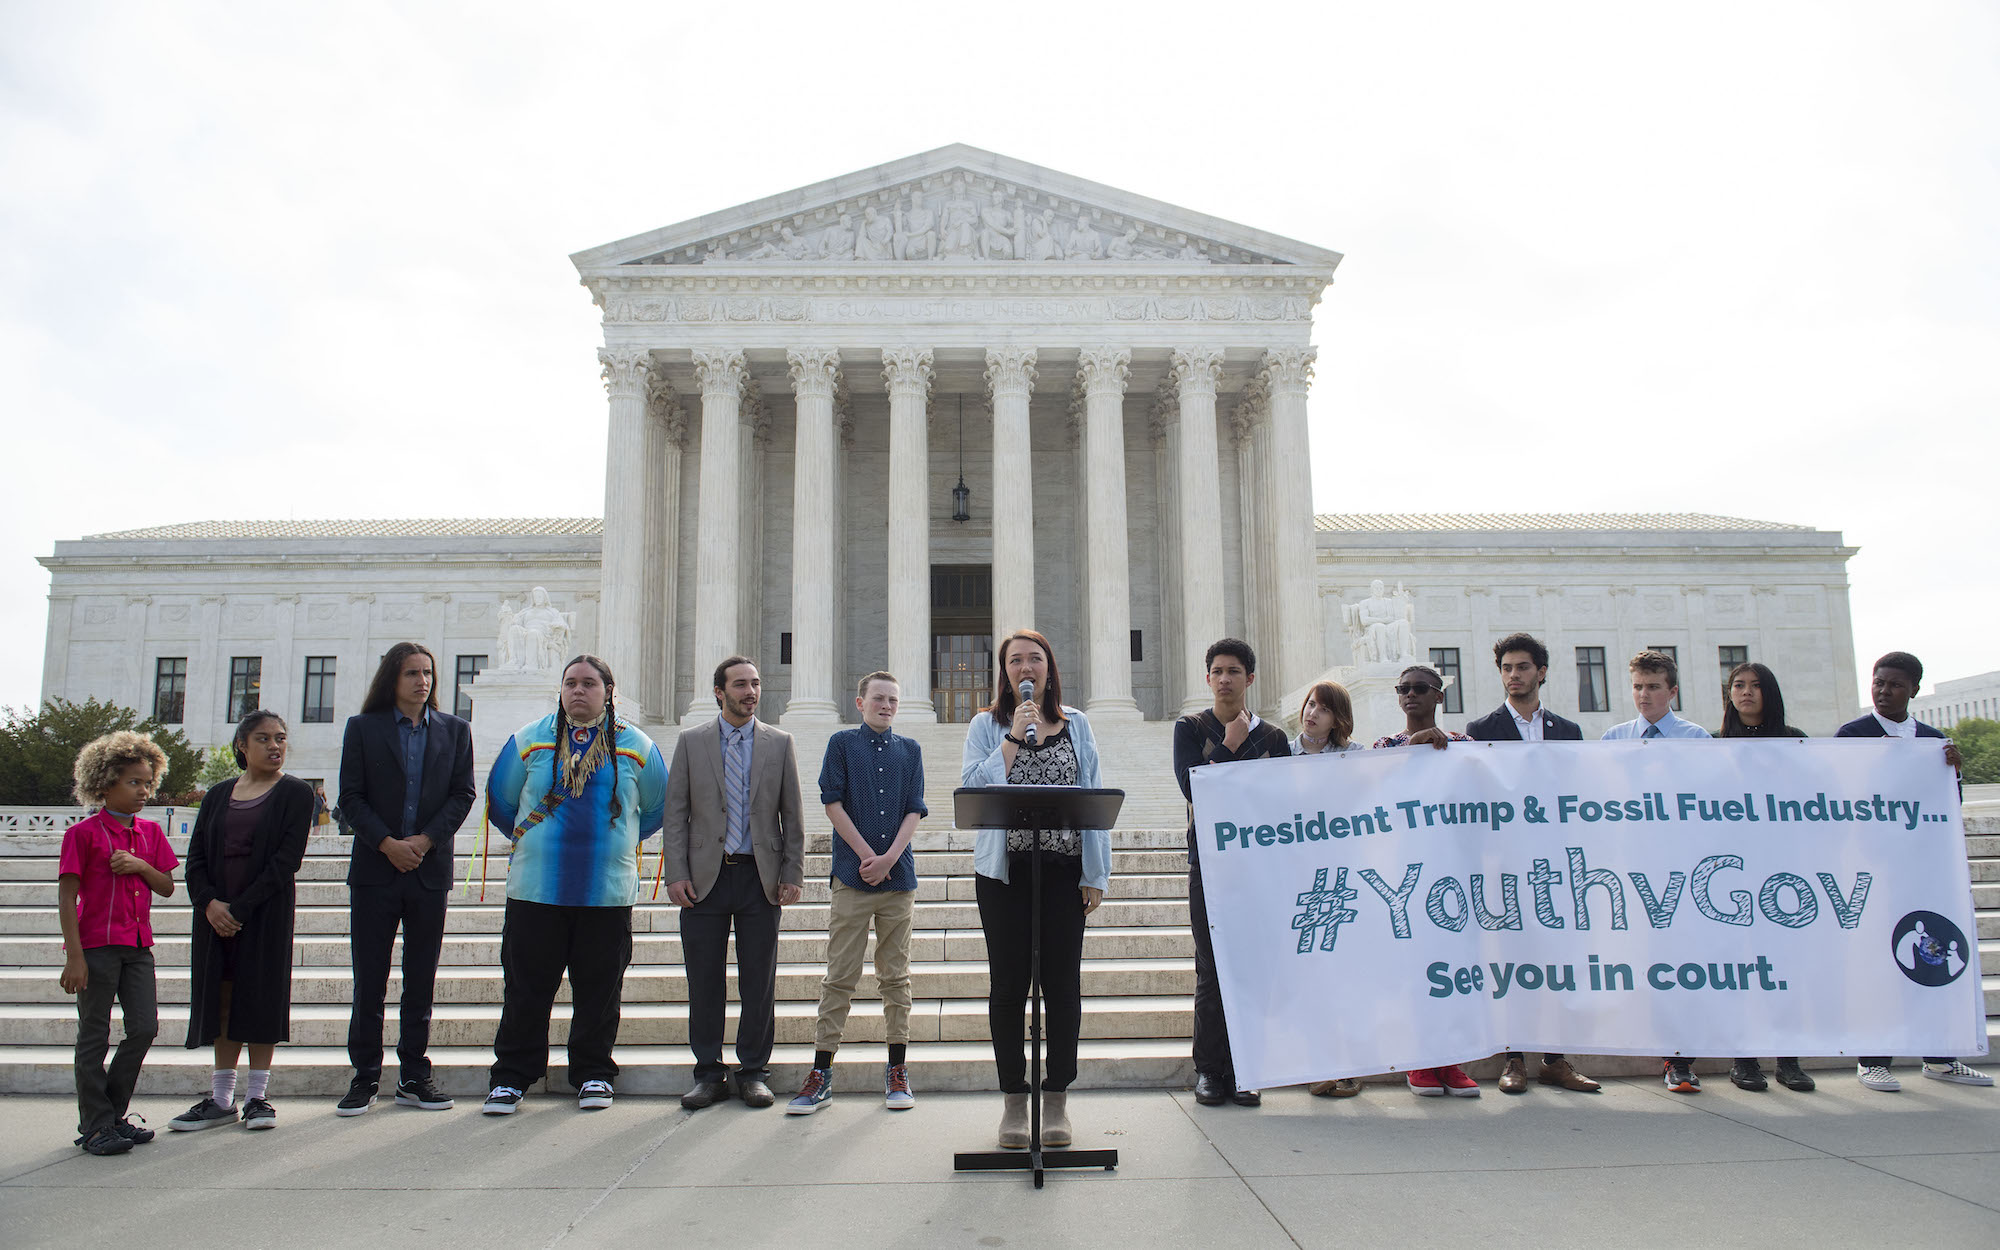 Youth plaintiff Kelsey Juliana speaks during a press conference in front of the U.S. Supreme Court in Washington, flanked by co-plaintiffs in their climate suit against the federal government.